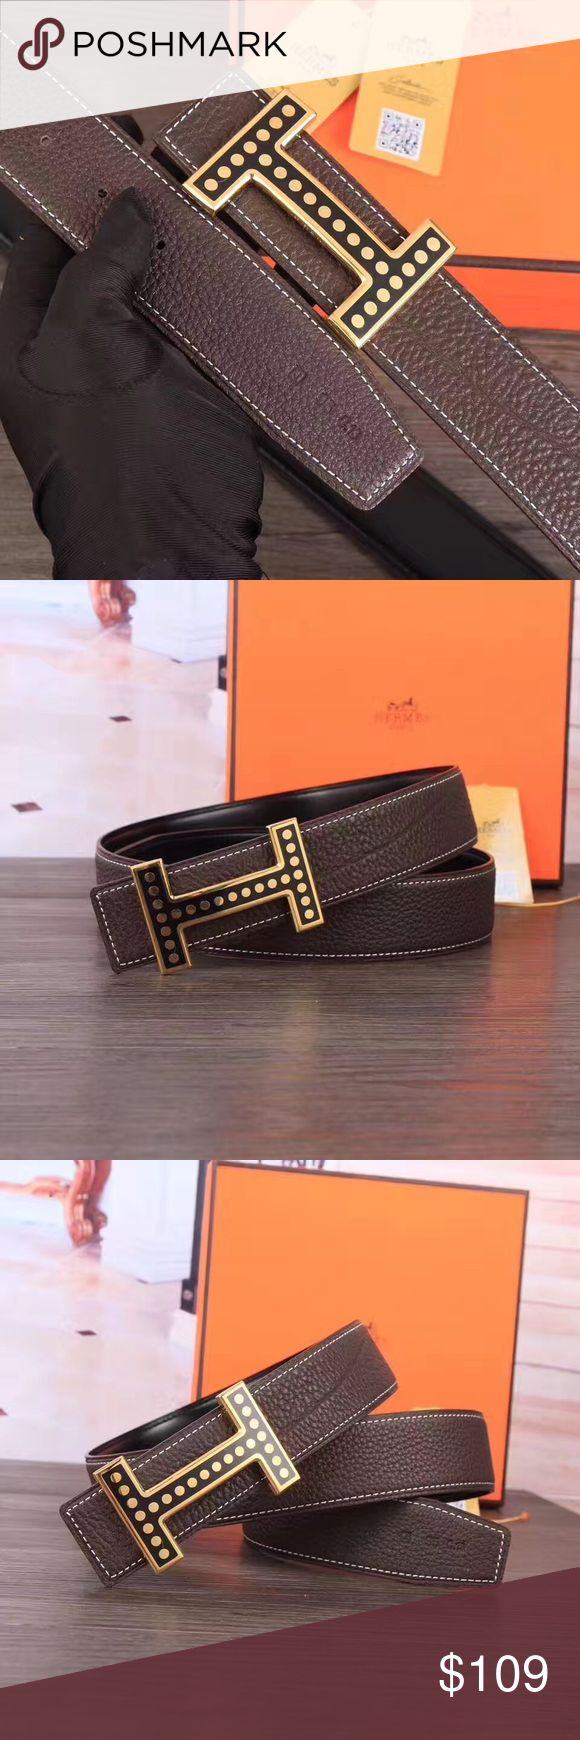 Hermes H men belts man belt 3.8cm Make from top layer high quality real leather and skins and top high quality steel copper and other metal.with original box. same quality as official.whatsapp:+86 18020615581.         SIZE:  size 80= waist(cm) 65-73 =pant size 26-28  size 85= waist(cm) 73-80 =pant size 28-30  size 90= waist(cm) 80-87 =pant size 30-33  size 95= waist(cm) 87-93 =pant size 33-35  size 100= waist(cm) 93-100 =pant size 35-37  size 105= waist(cm) 100-110 =pant size 37-40  size…